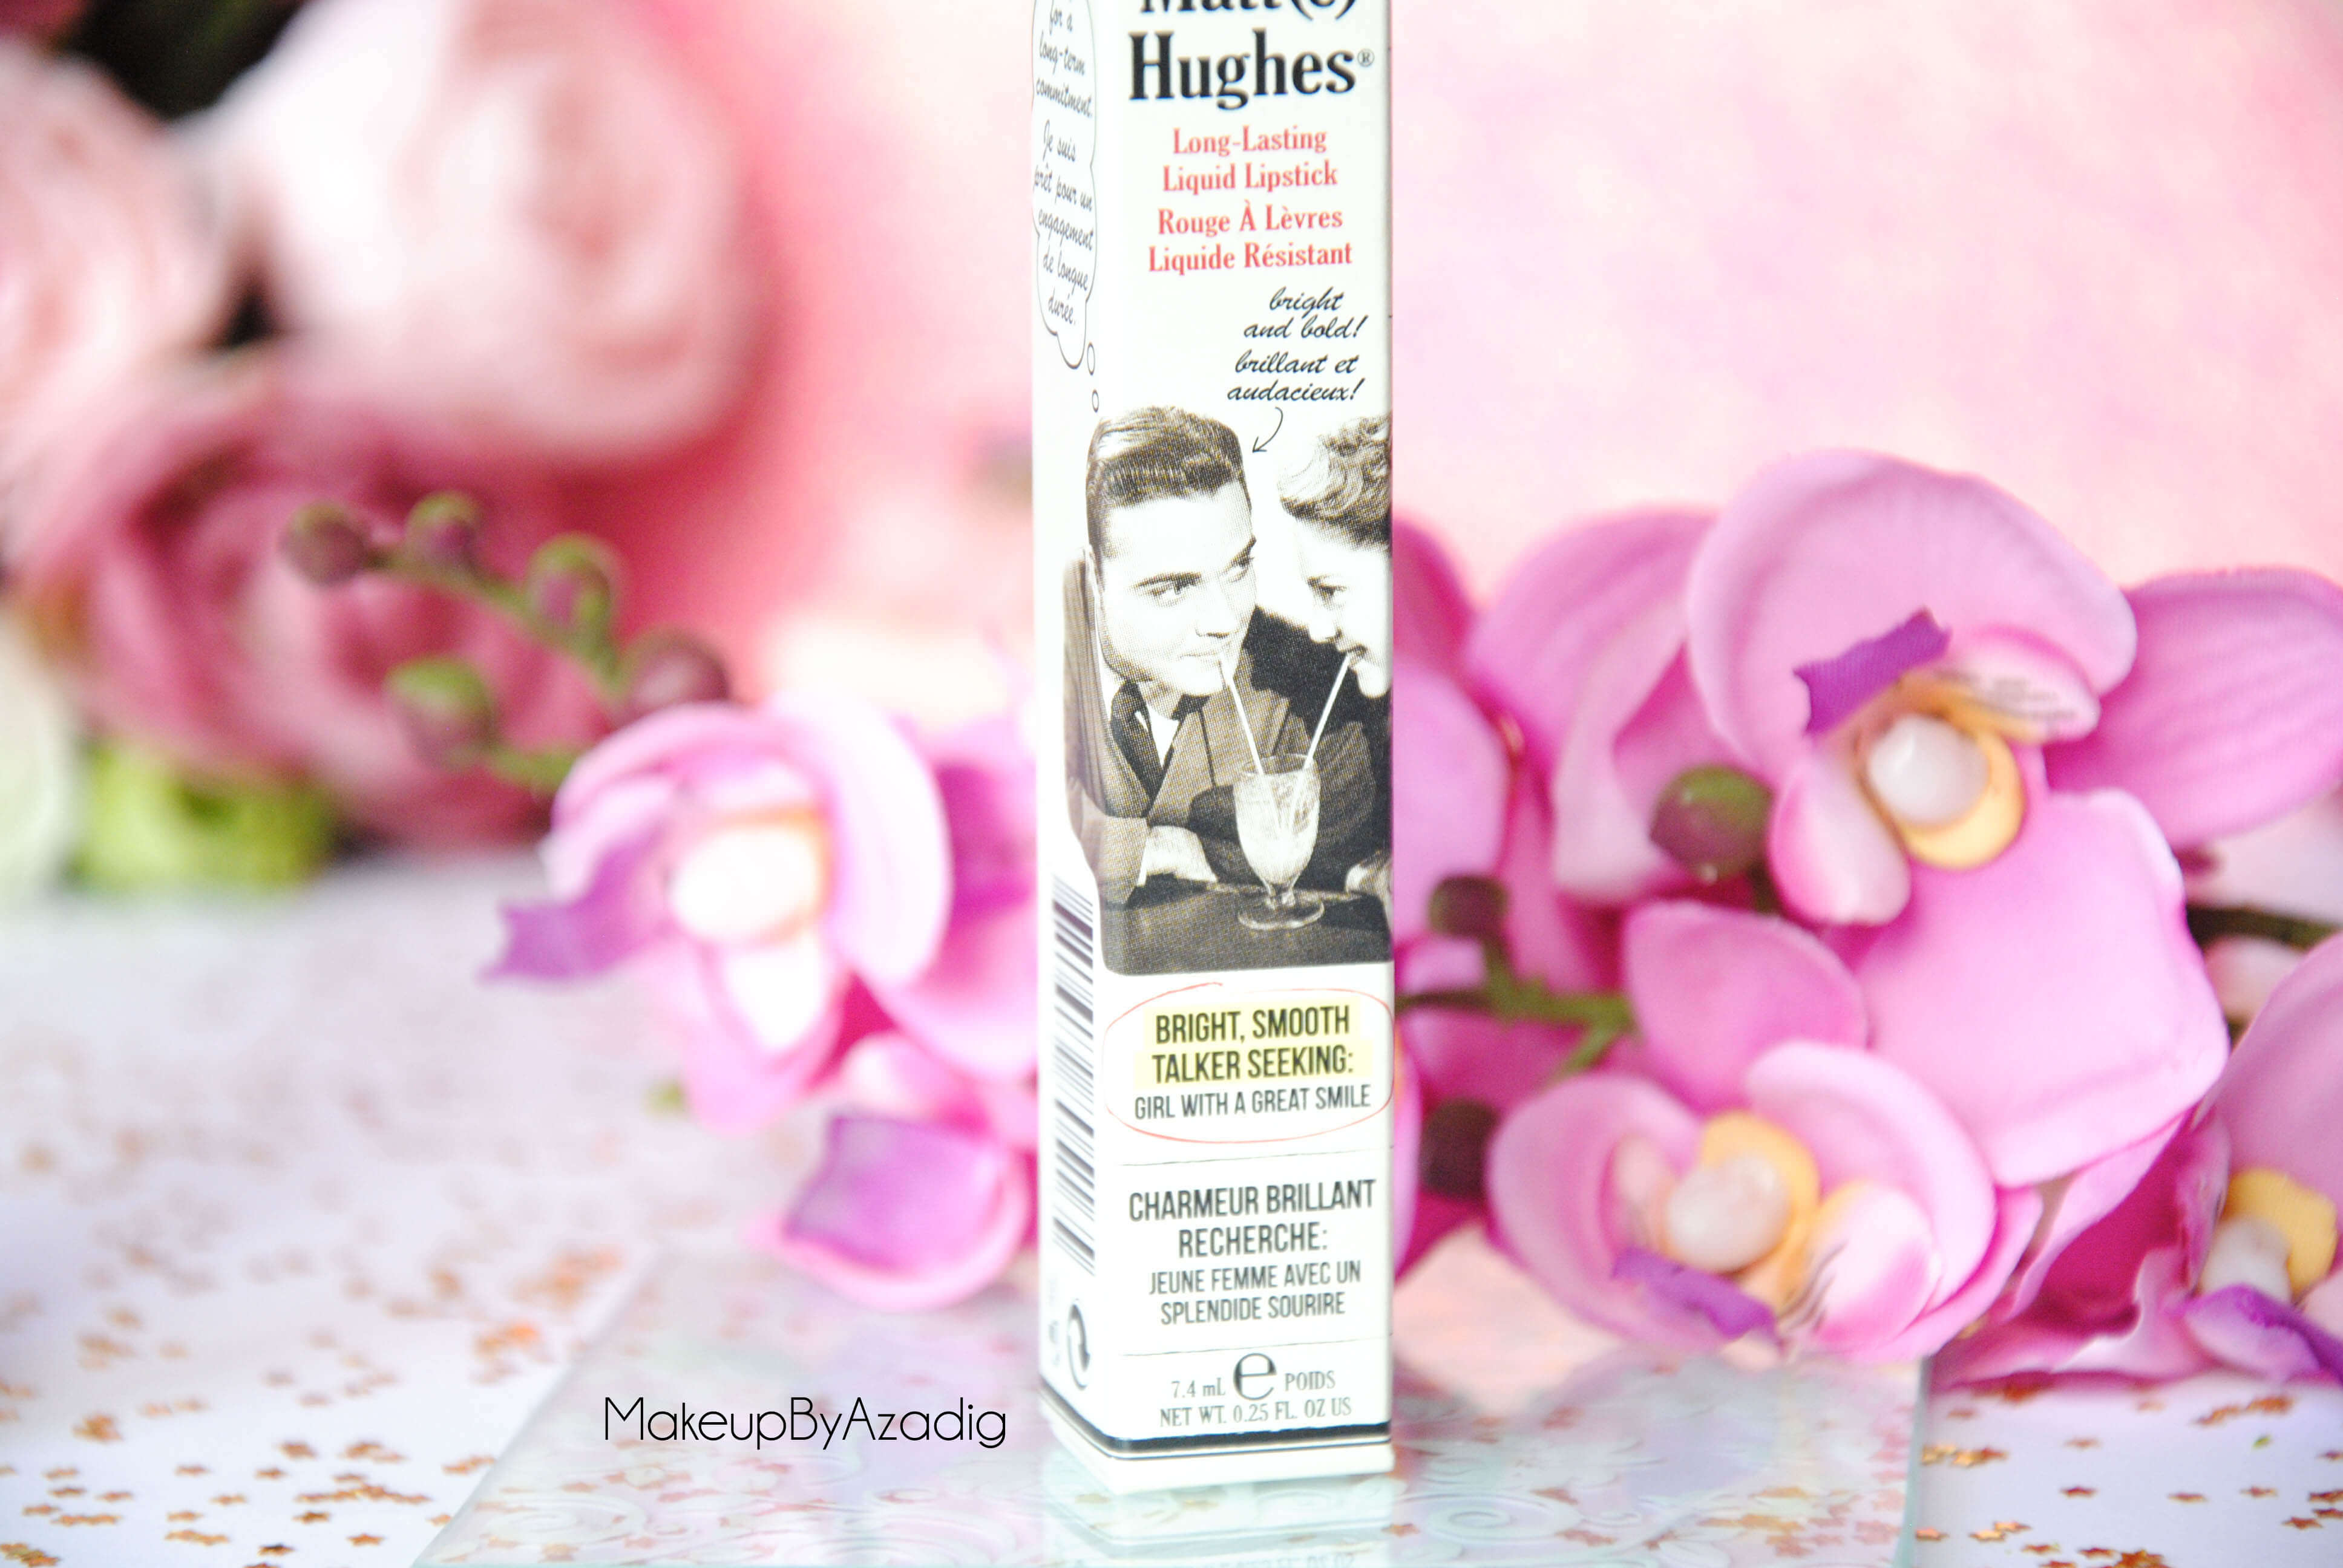 meet-matte-hughes-the-balm-charming-makeupbyazadig-troyes-paris-rouge-levres-liquide-swatch-review-avis-vintage